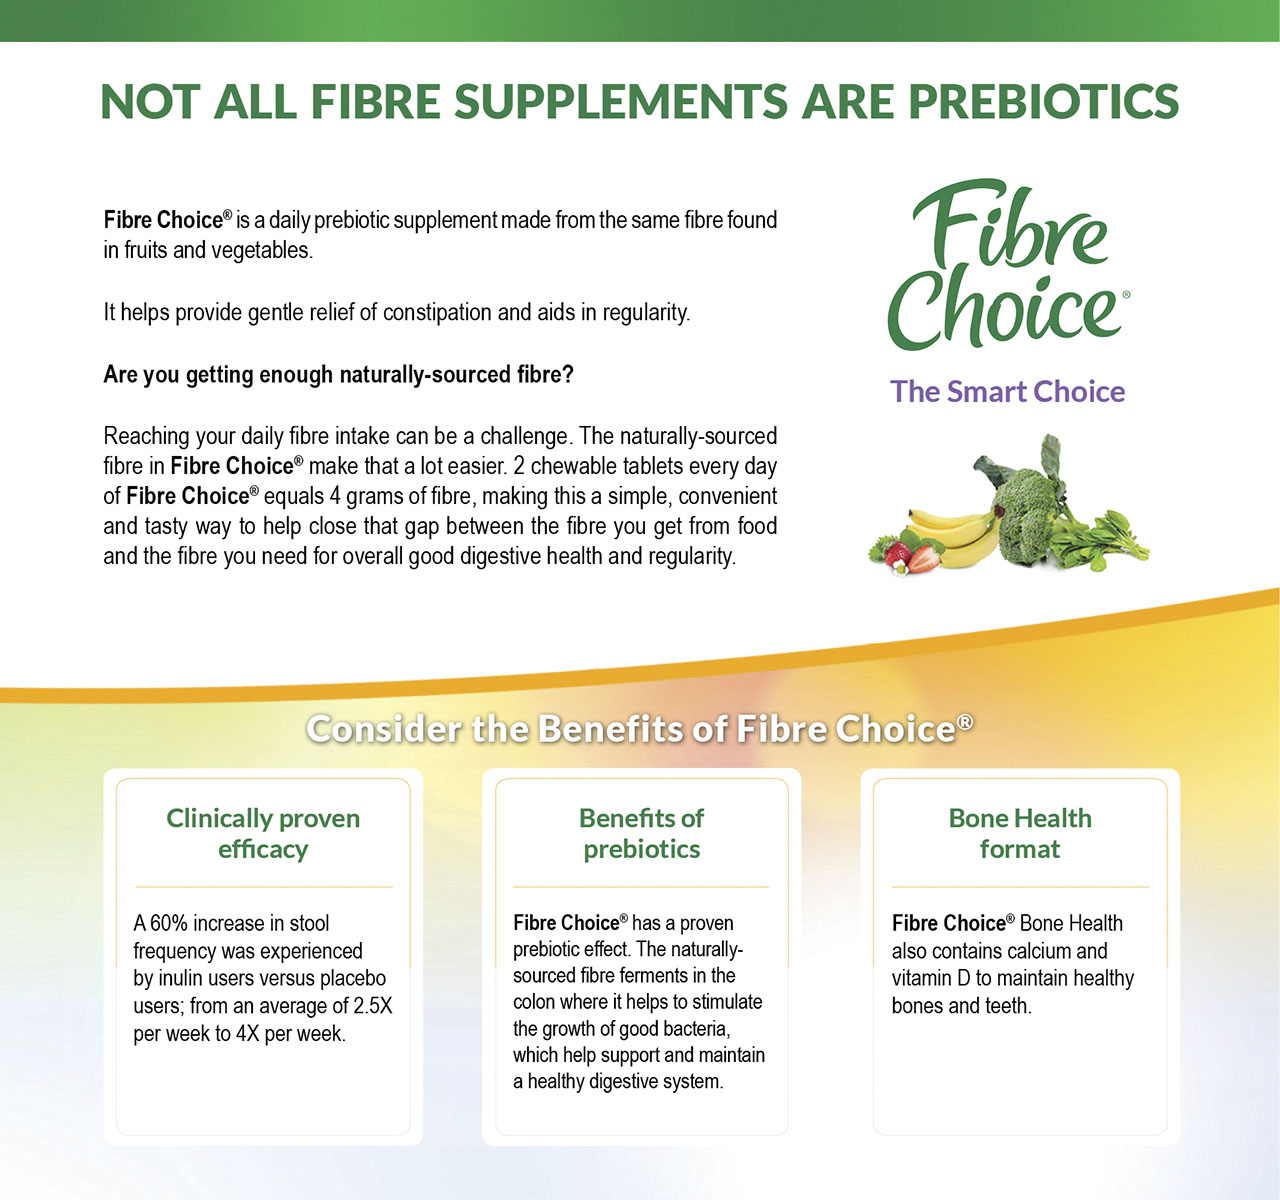 Fibre Choice® - A Daily Naturally-Sourced Prebiotic Fibre for Gentle Relief of Constipation